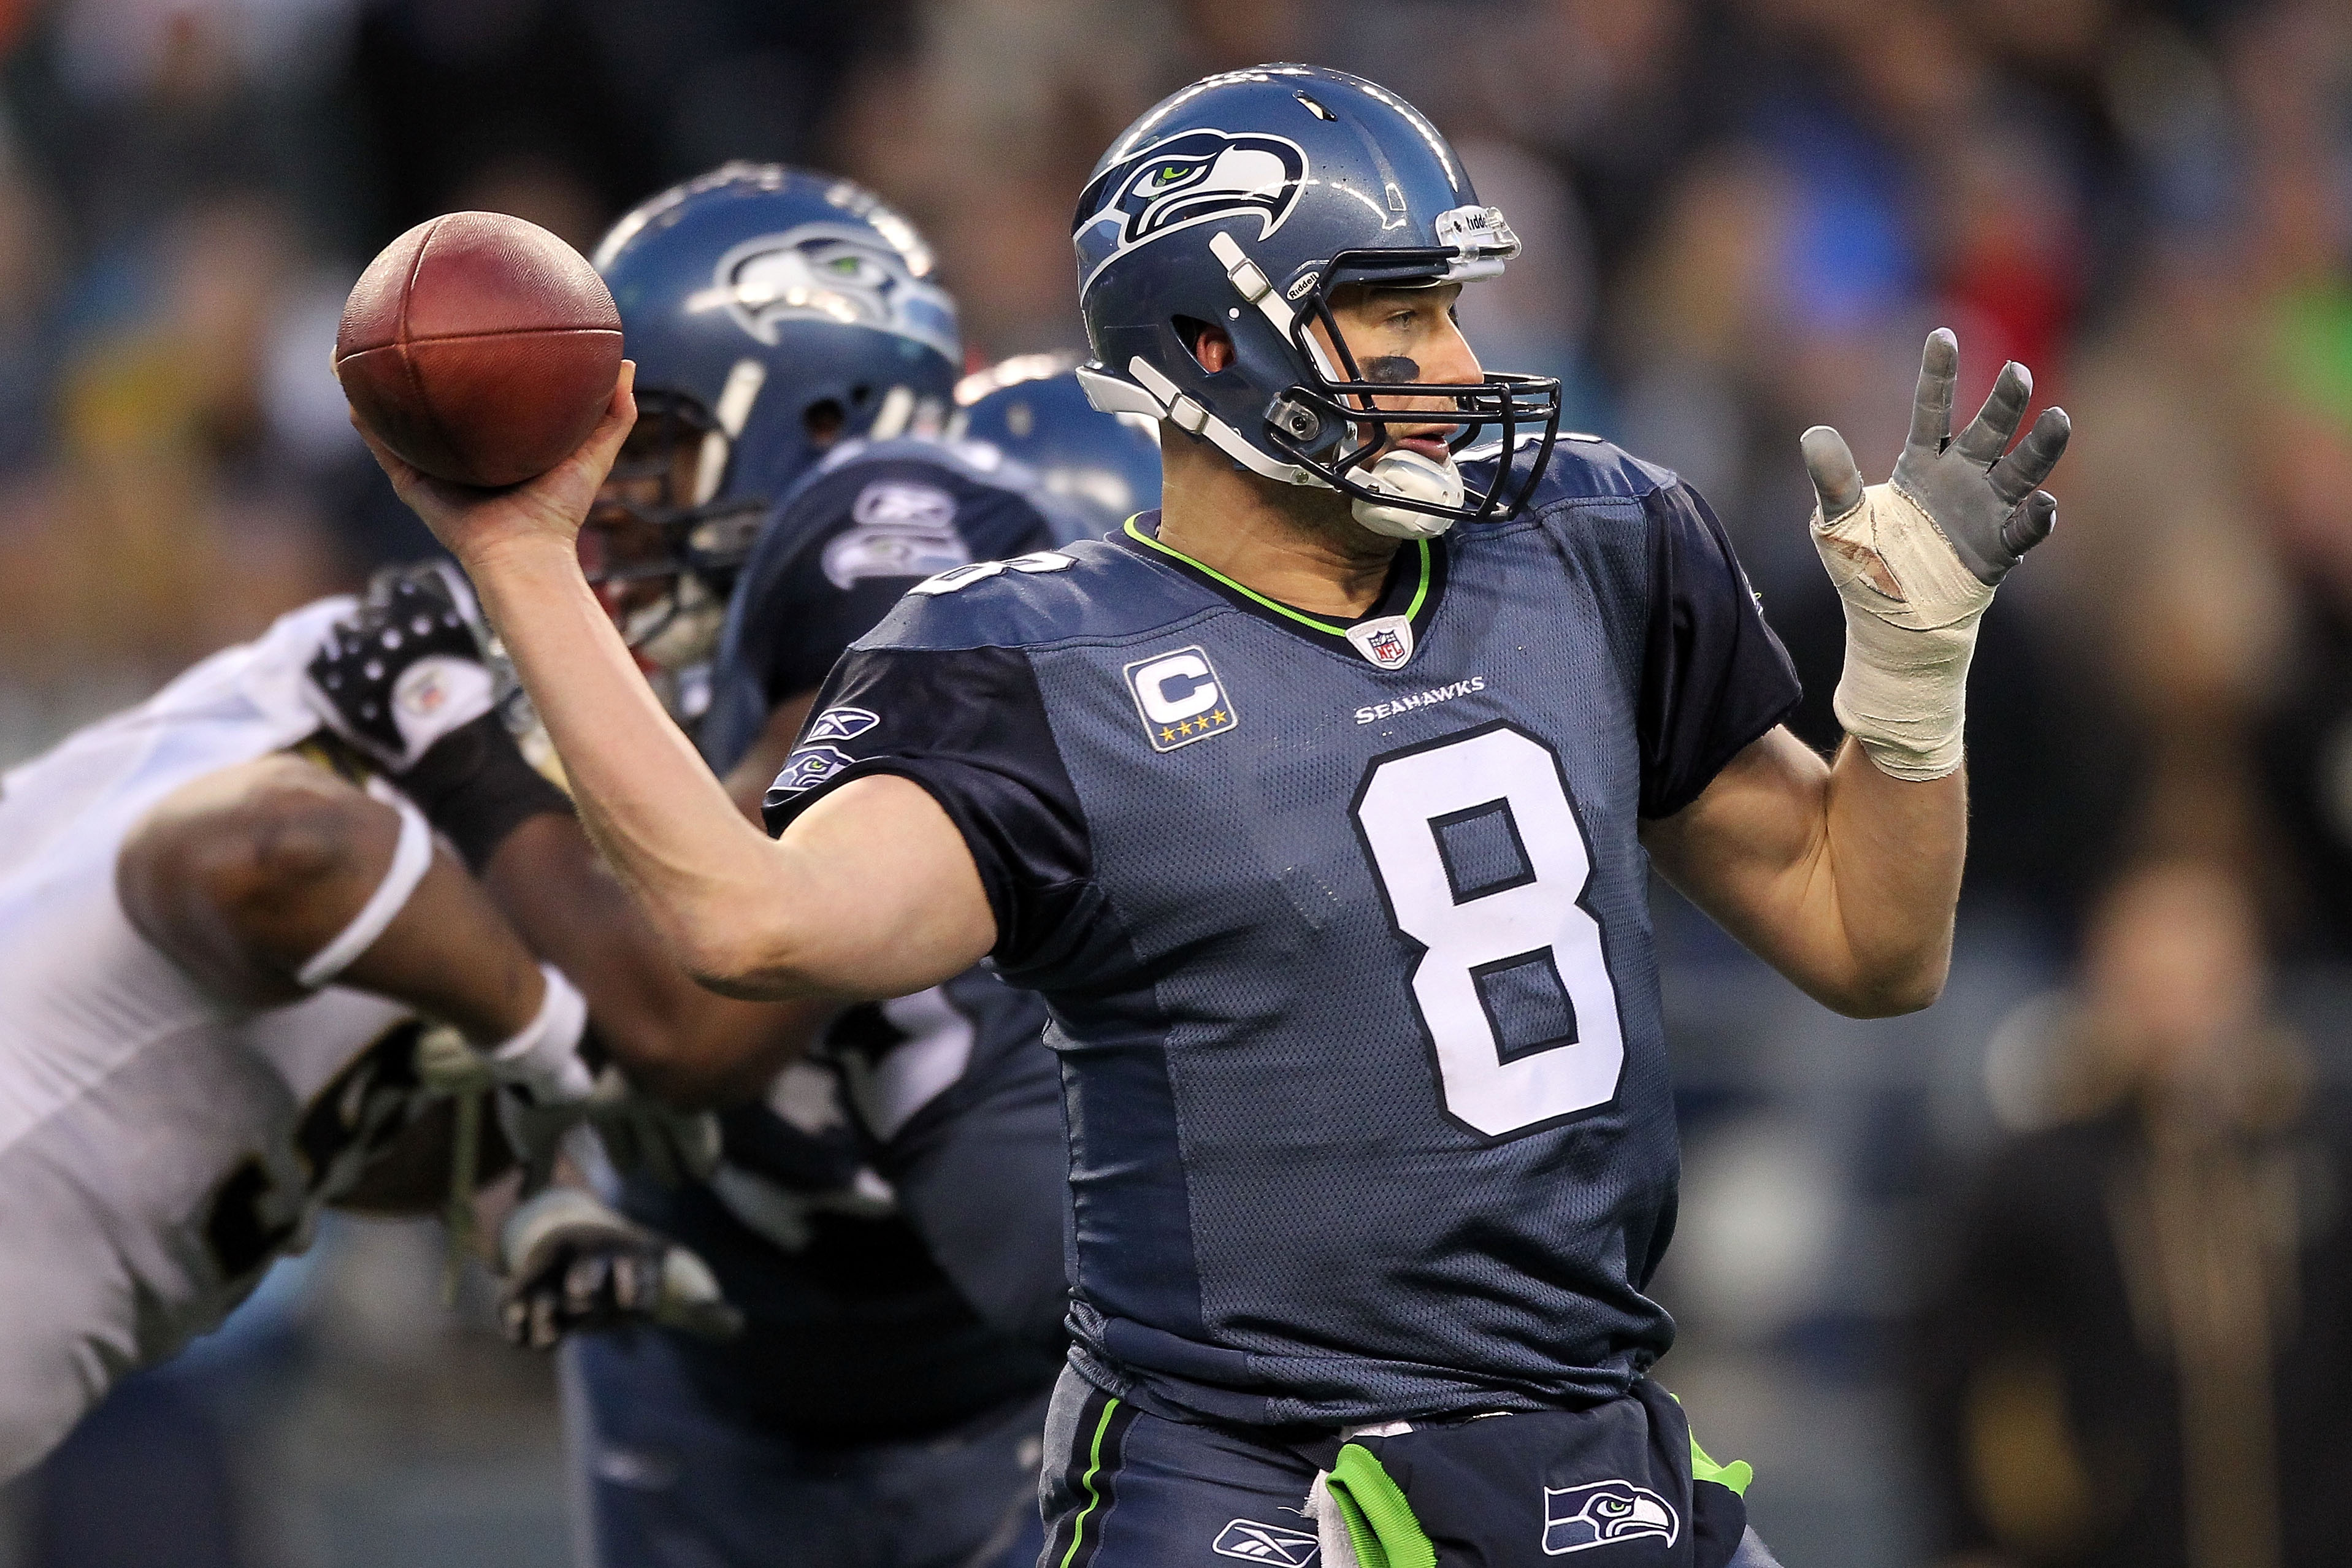 SEATTLE, WA - JANUARY 08:  Quarterback Matt Hasselbeck #8 of the Seattle Seahawks throws the ball in the second half against the New Orleans Saints during the 2011 NFC wild-card playoff game at Qwest Field on January 8, 2011 in Seattle, Washington.  (Phot